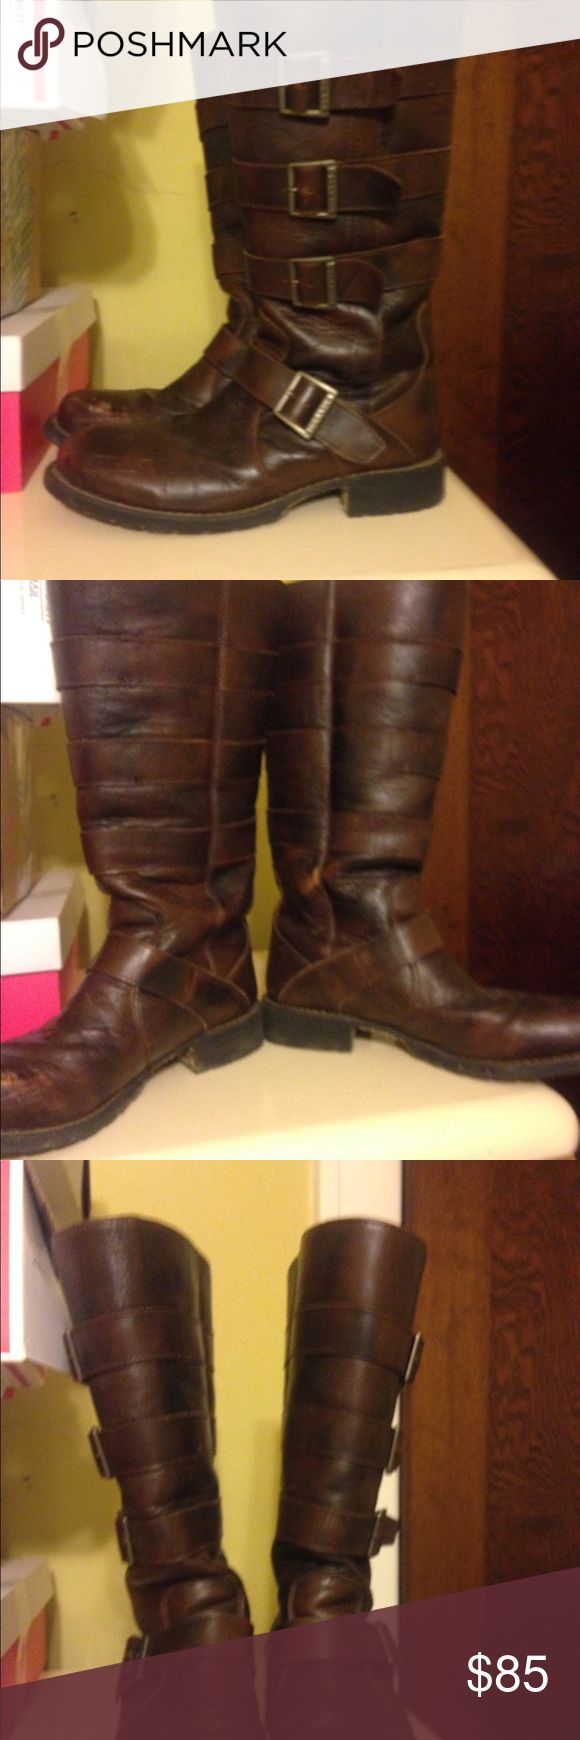 Durango brown leather boots sz 8 Durango Brown leather strap purse boots quality and detail non slip skid soles great winter boots in great condition sz 8 Durango Shoes Winter & Rain Boots